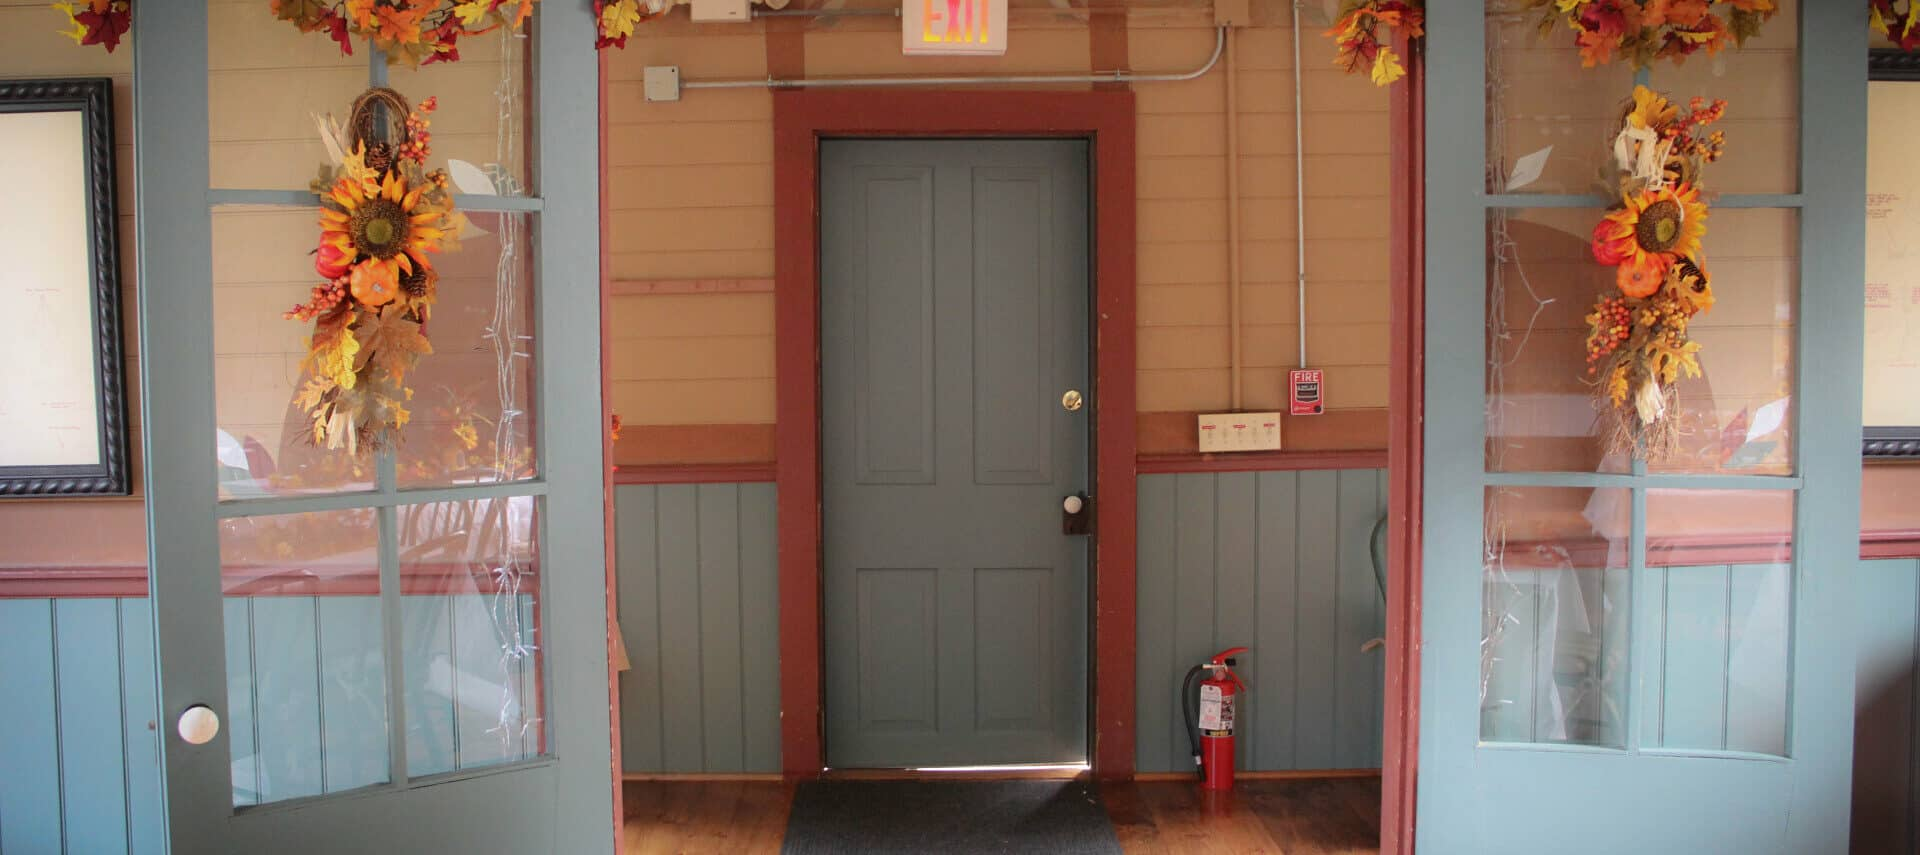 gray double glass paned doors with fall flowers arrangements facing hallway with black carpet runner, fire extinguisher, exit sign and fire alarm